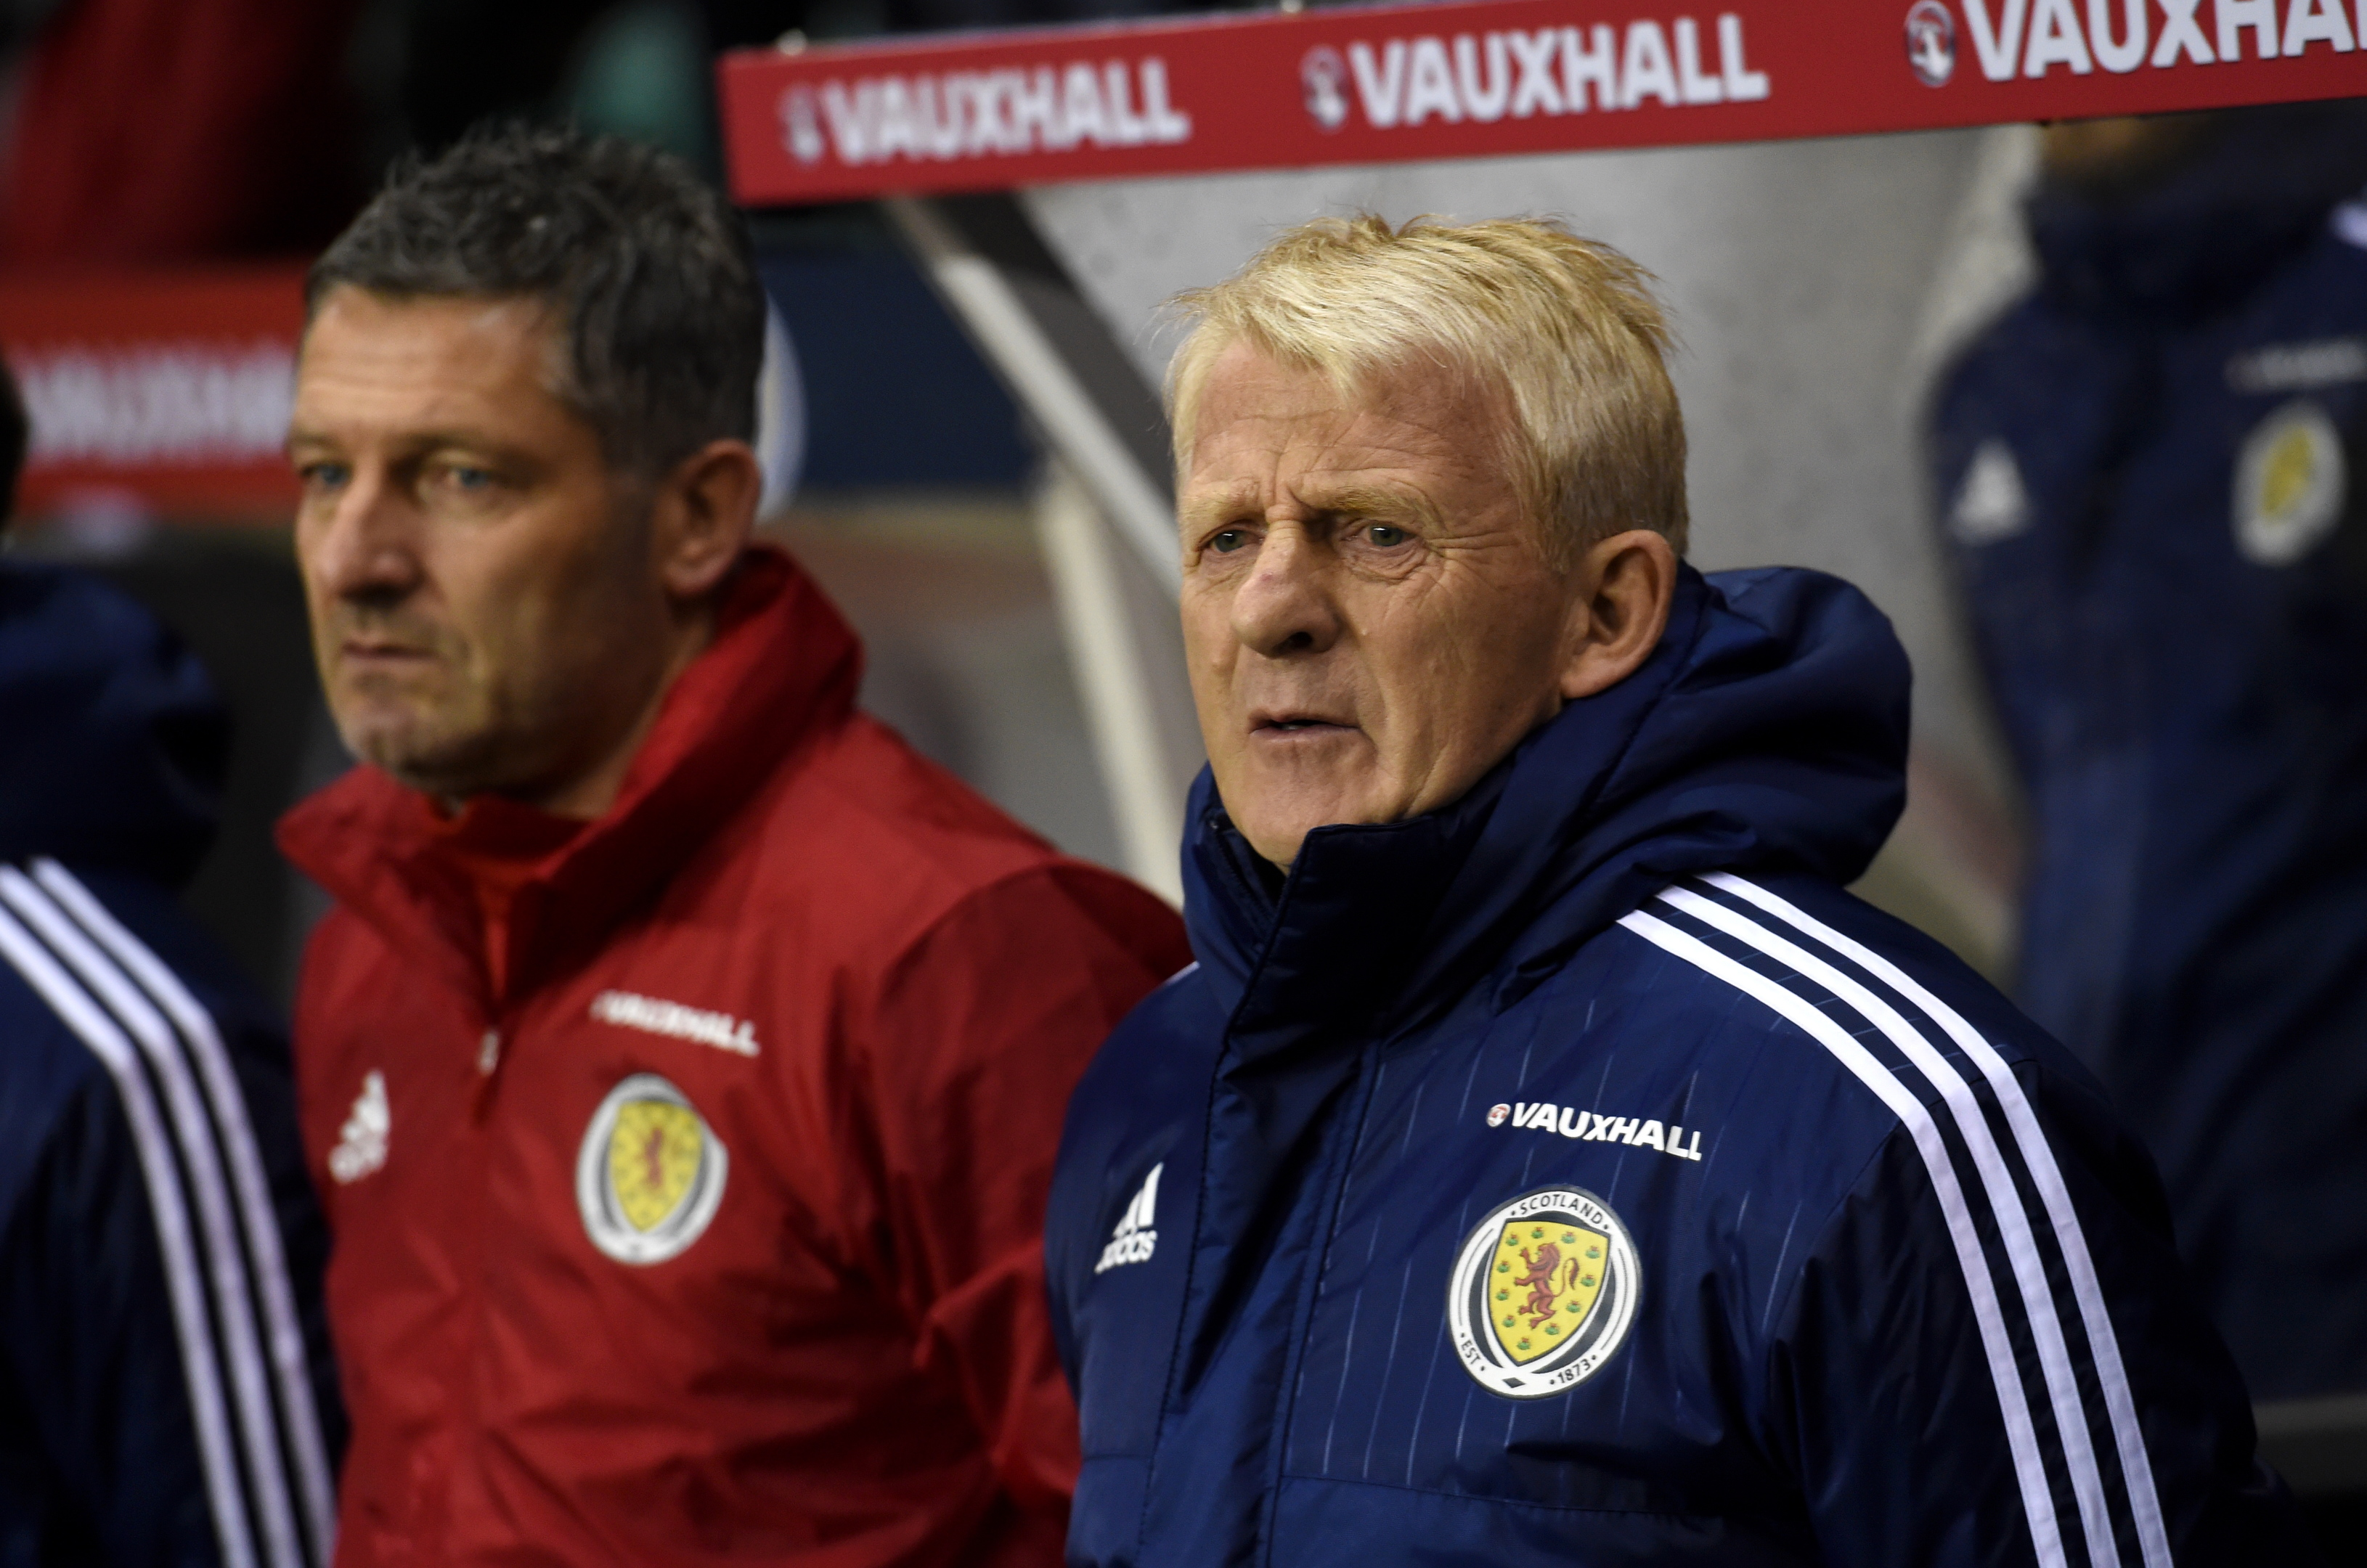 Gordon Strachan, right, looks on as Scotland labour against Canada. (Picture by Darrell Benns.)